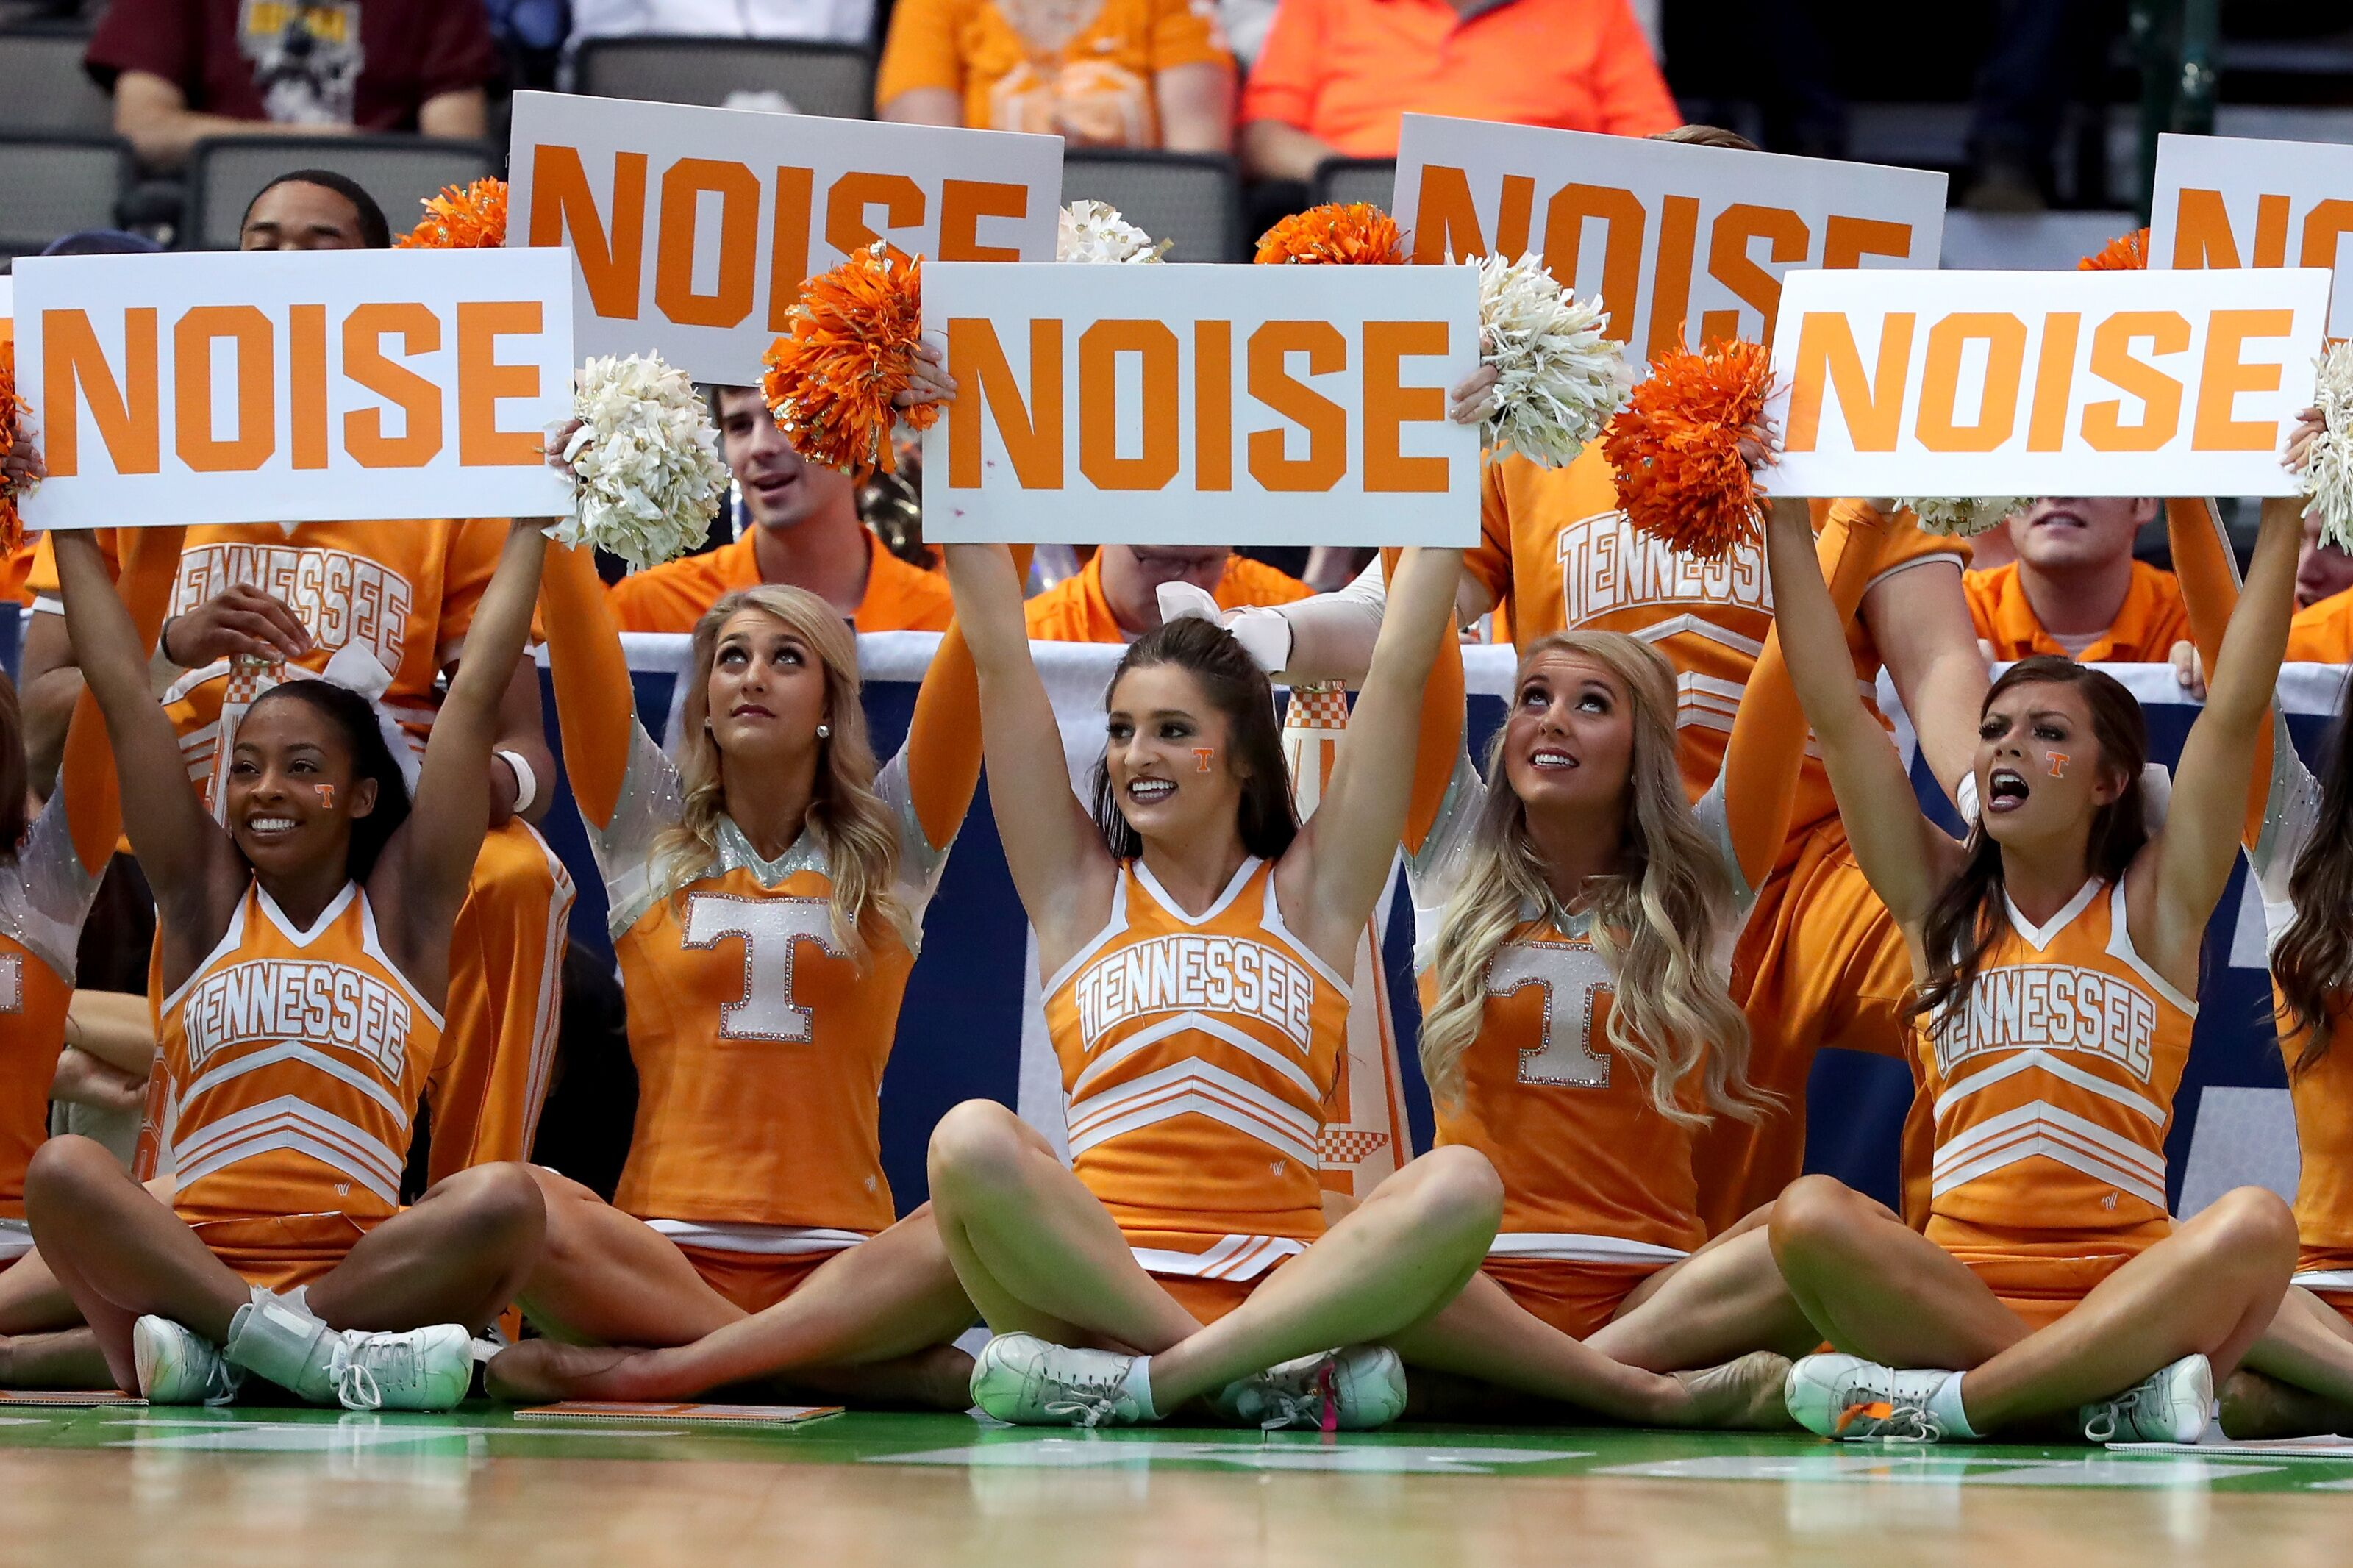 Tennessee basketball: Uros Plavsic could play next season per Rick Barnes